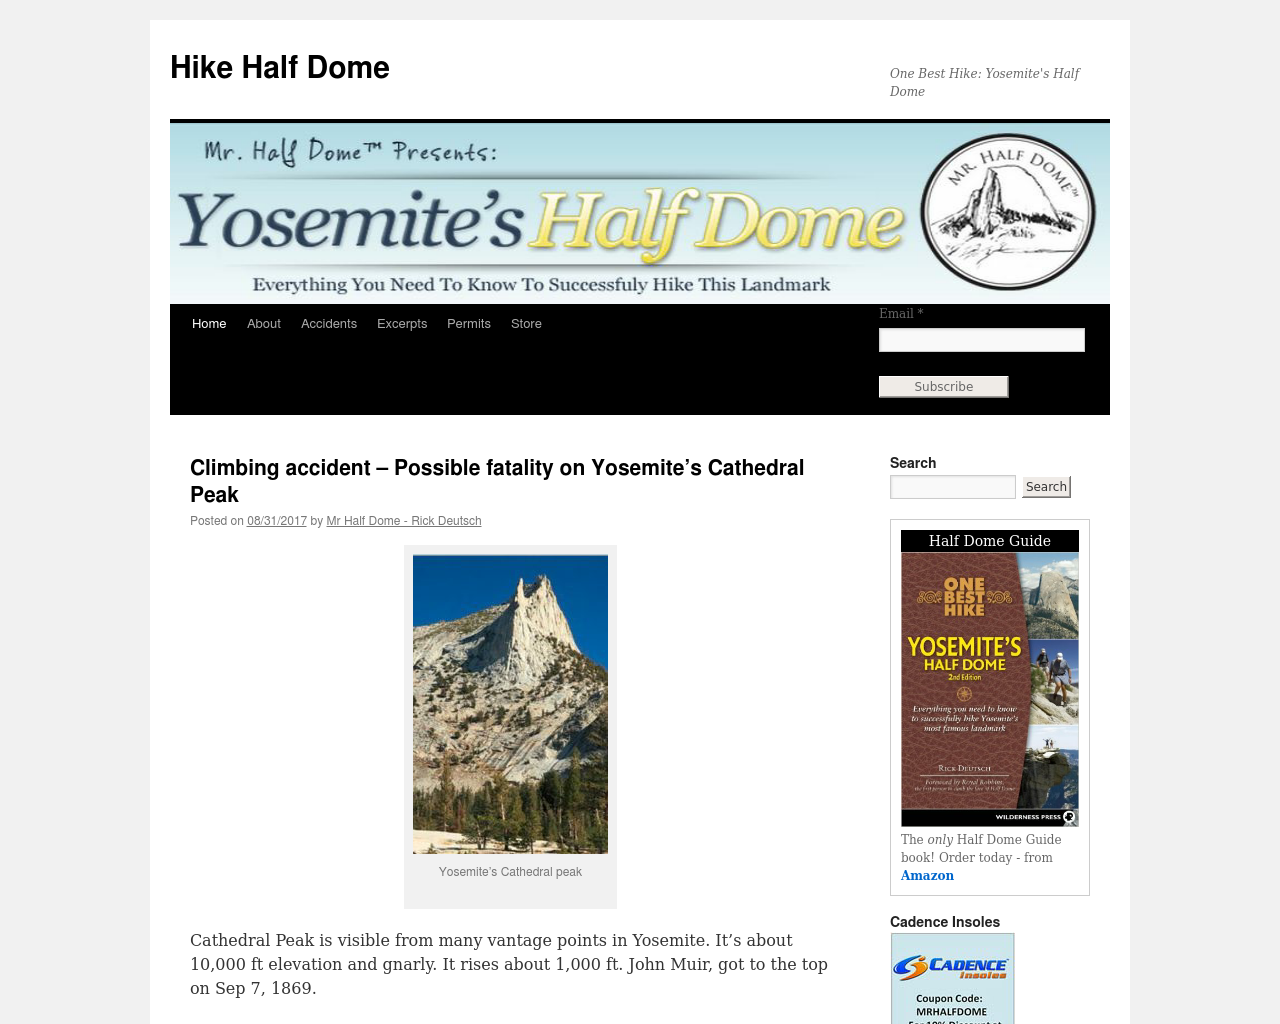 Hike-Half-Dome-Advertising-Reviews-Pricing